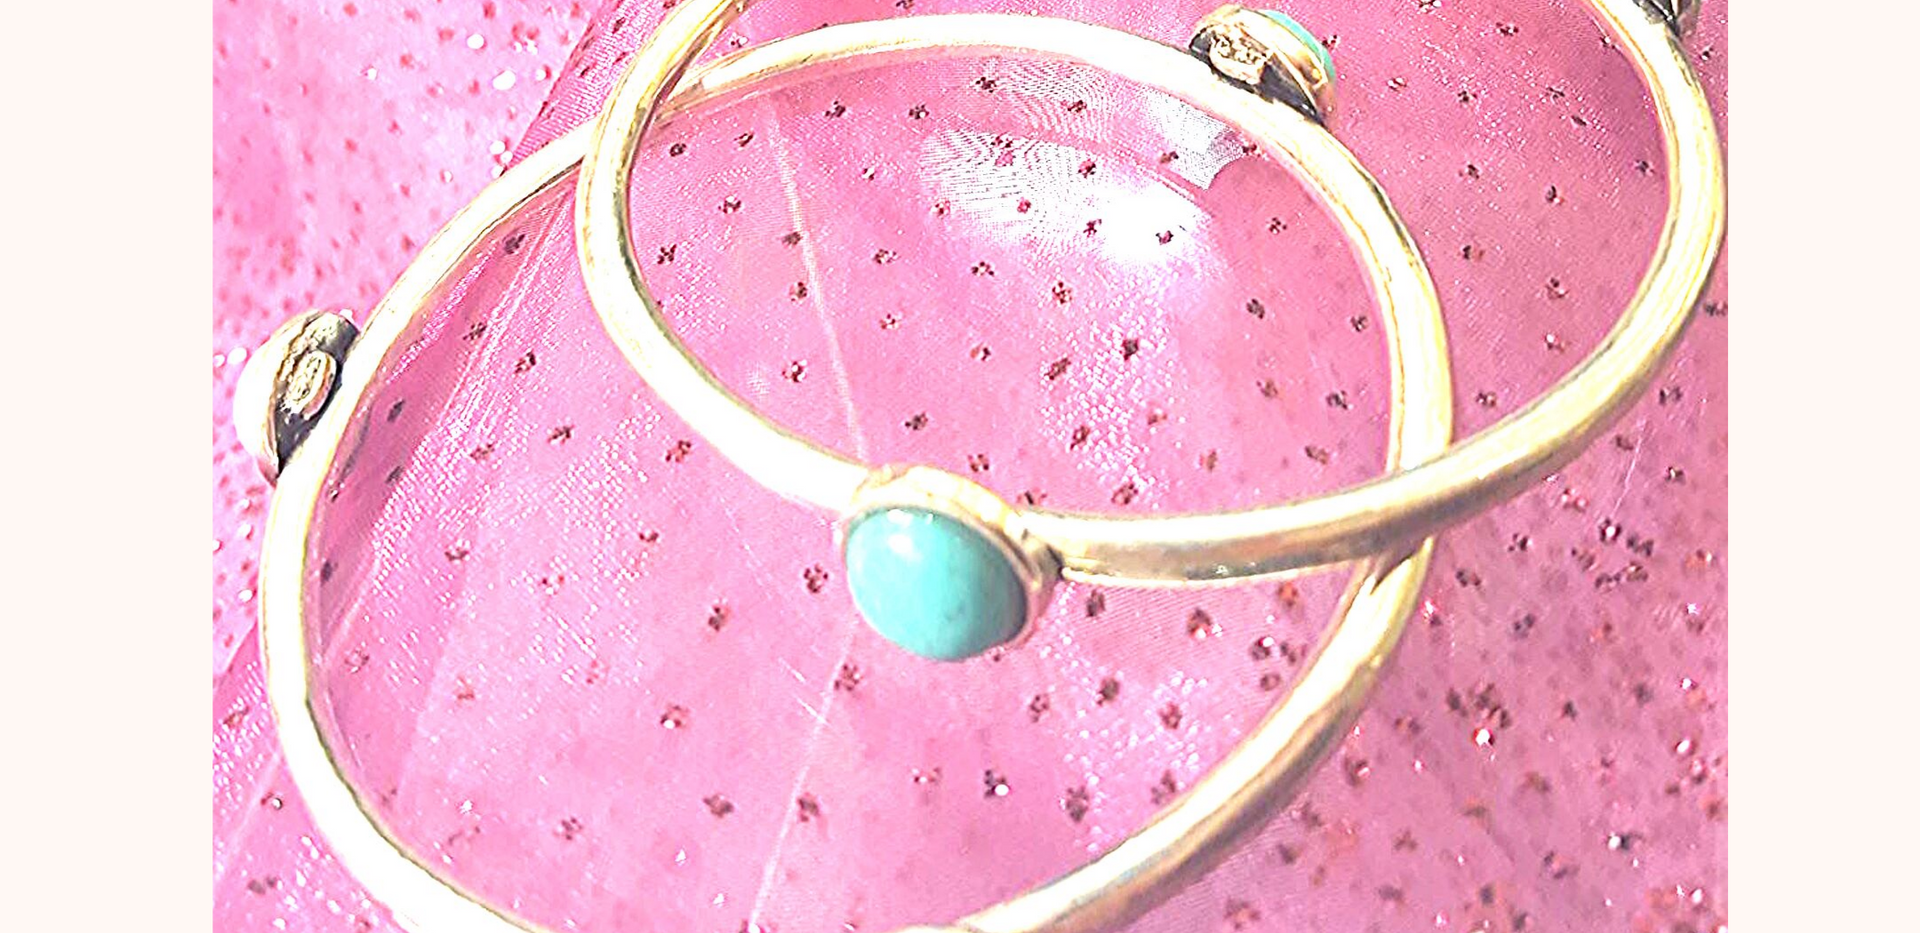 Silver / turquoise bangle set